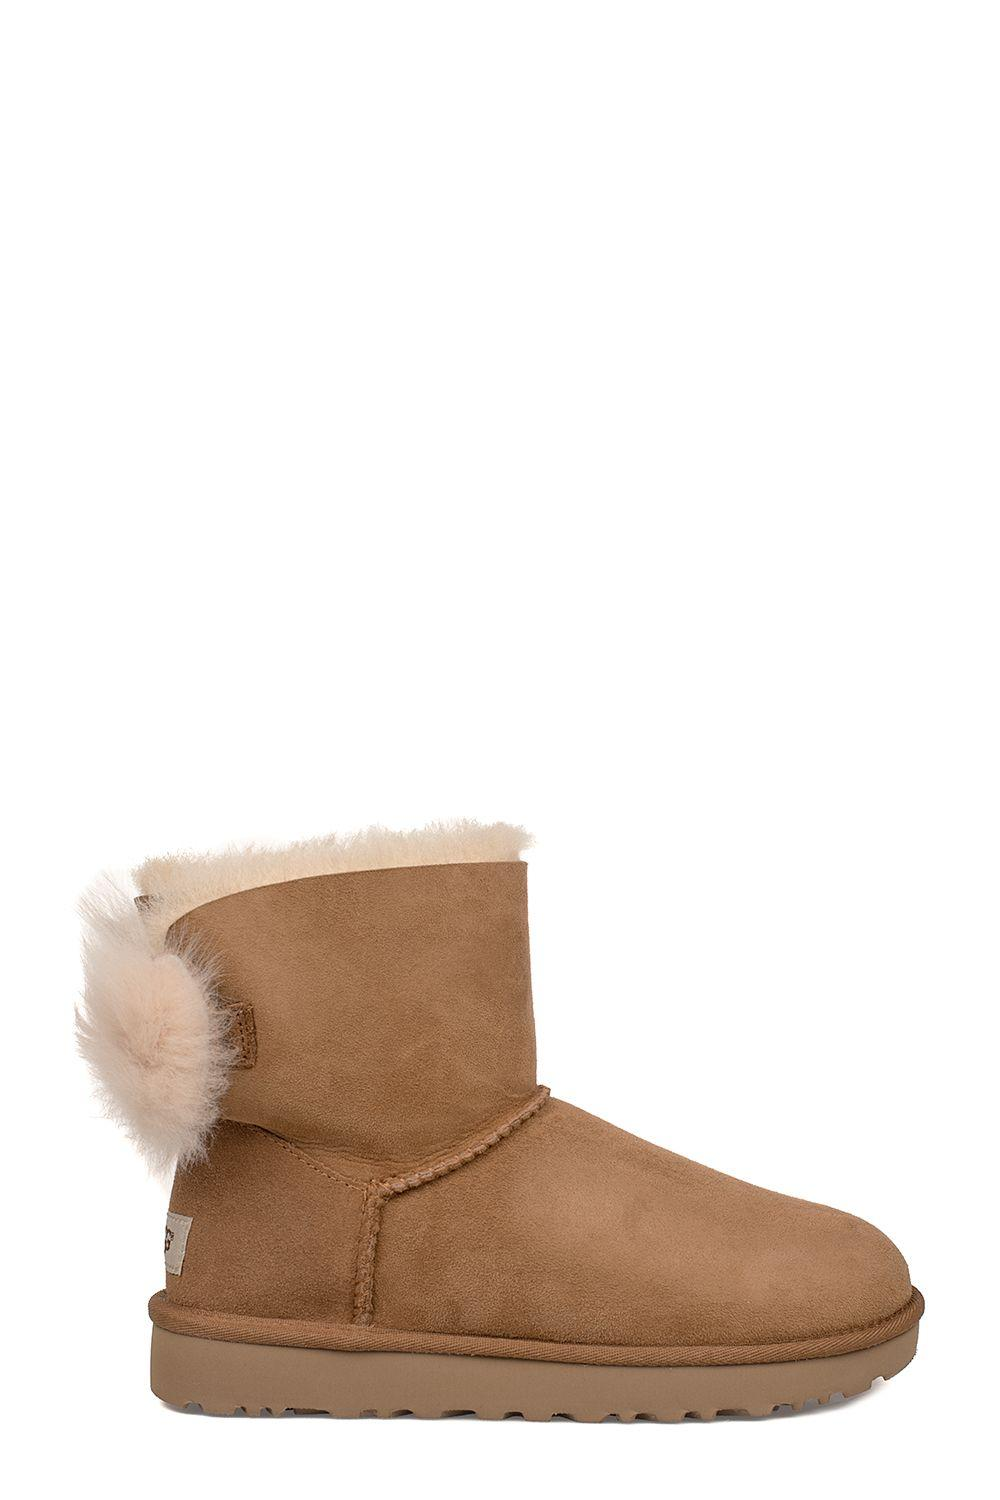 Ugg Chestnut Fluff Bow Mini Low Boot In Brown